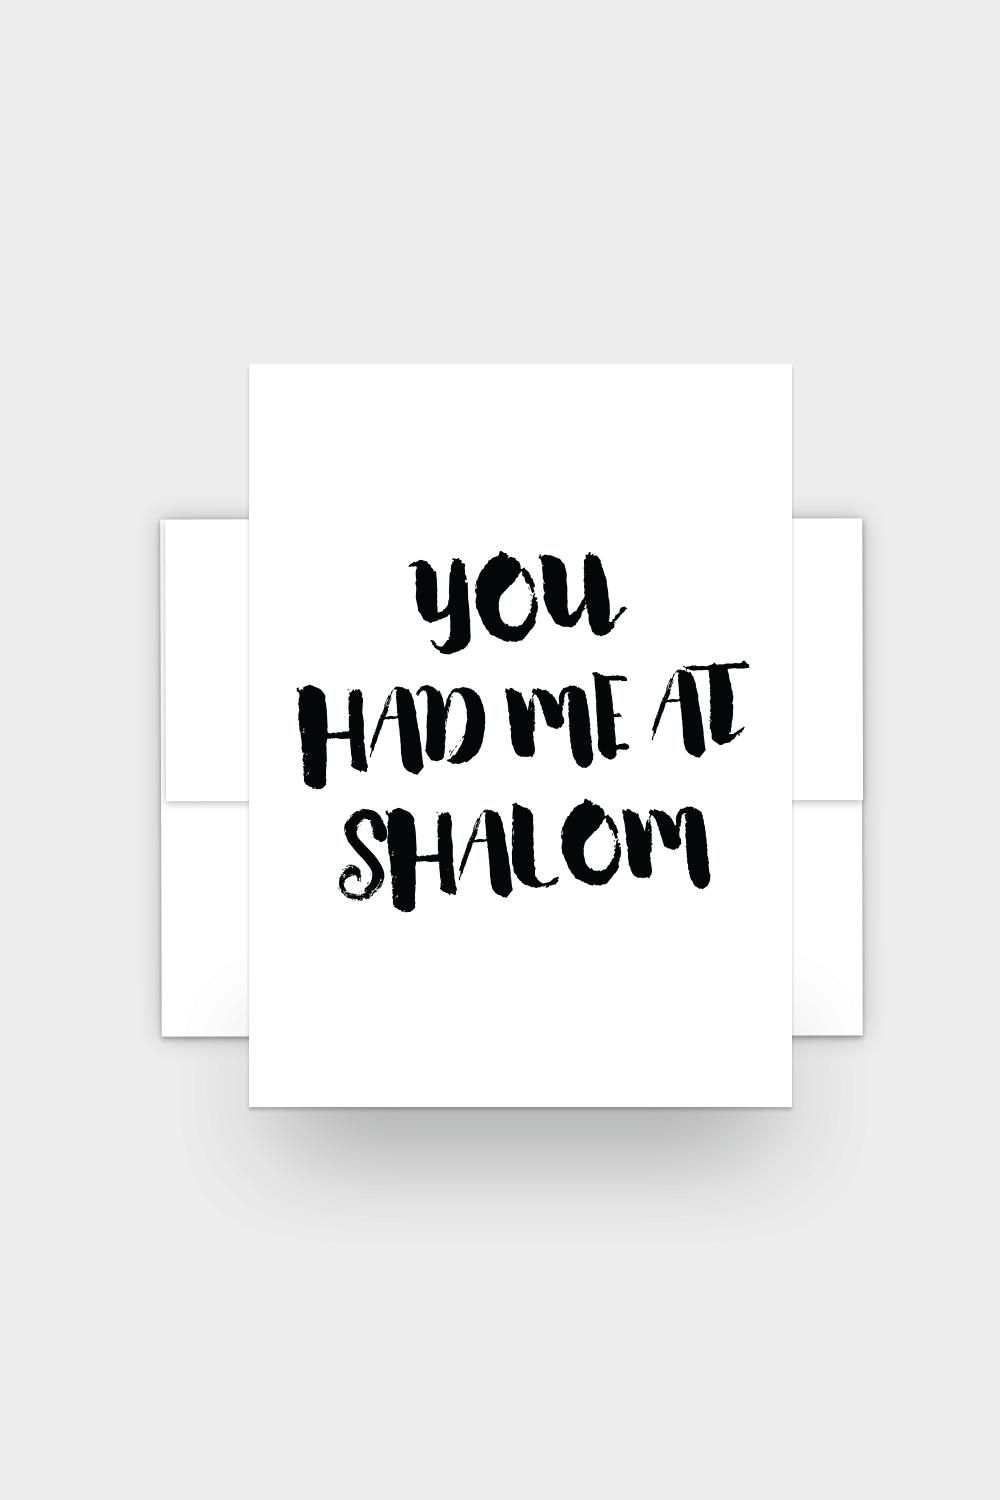 You had me at shalom funny jewish greeting card m4hsunfo